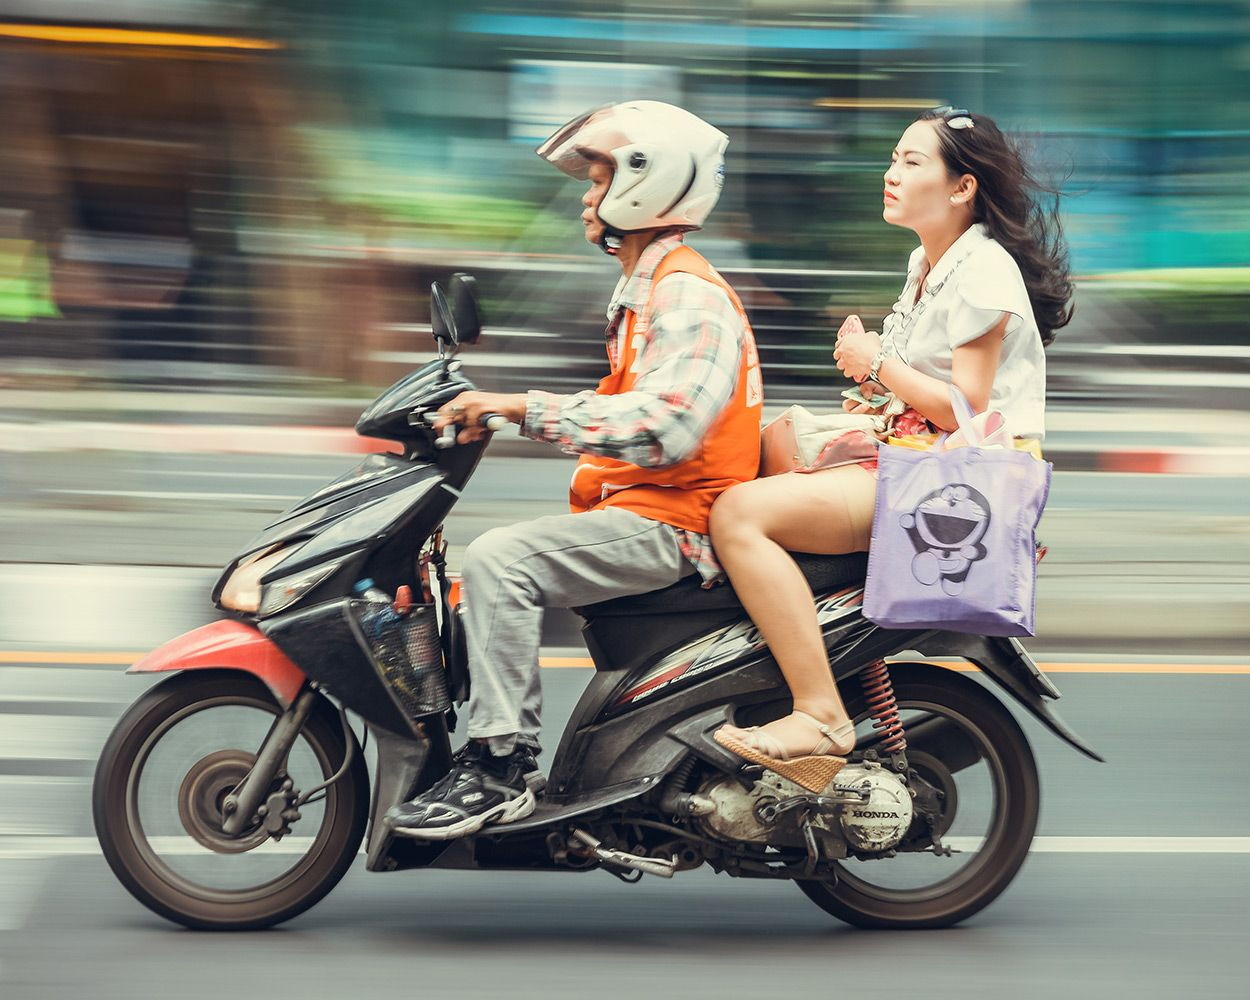 Are there any Motorbike Taxi services in India? Taxi